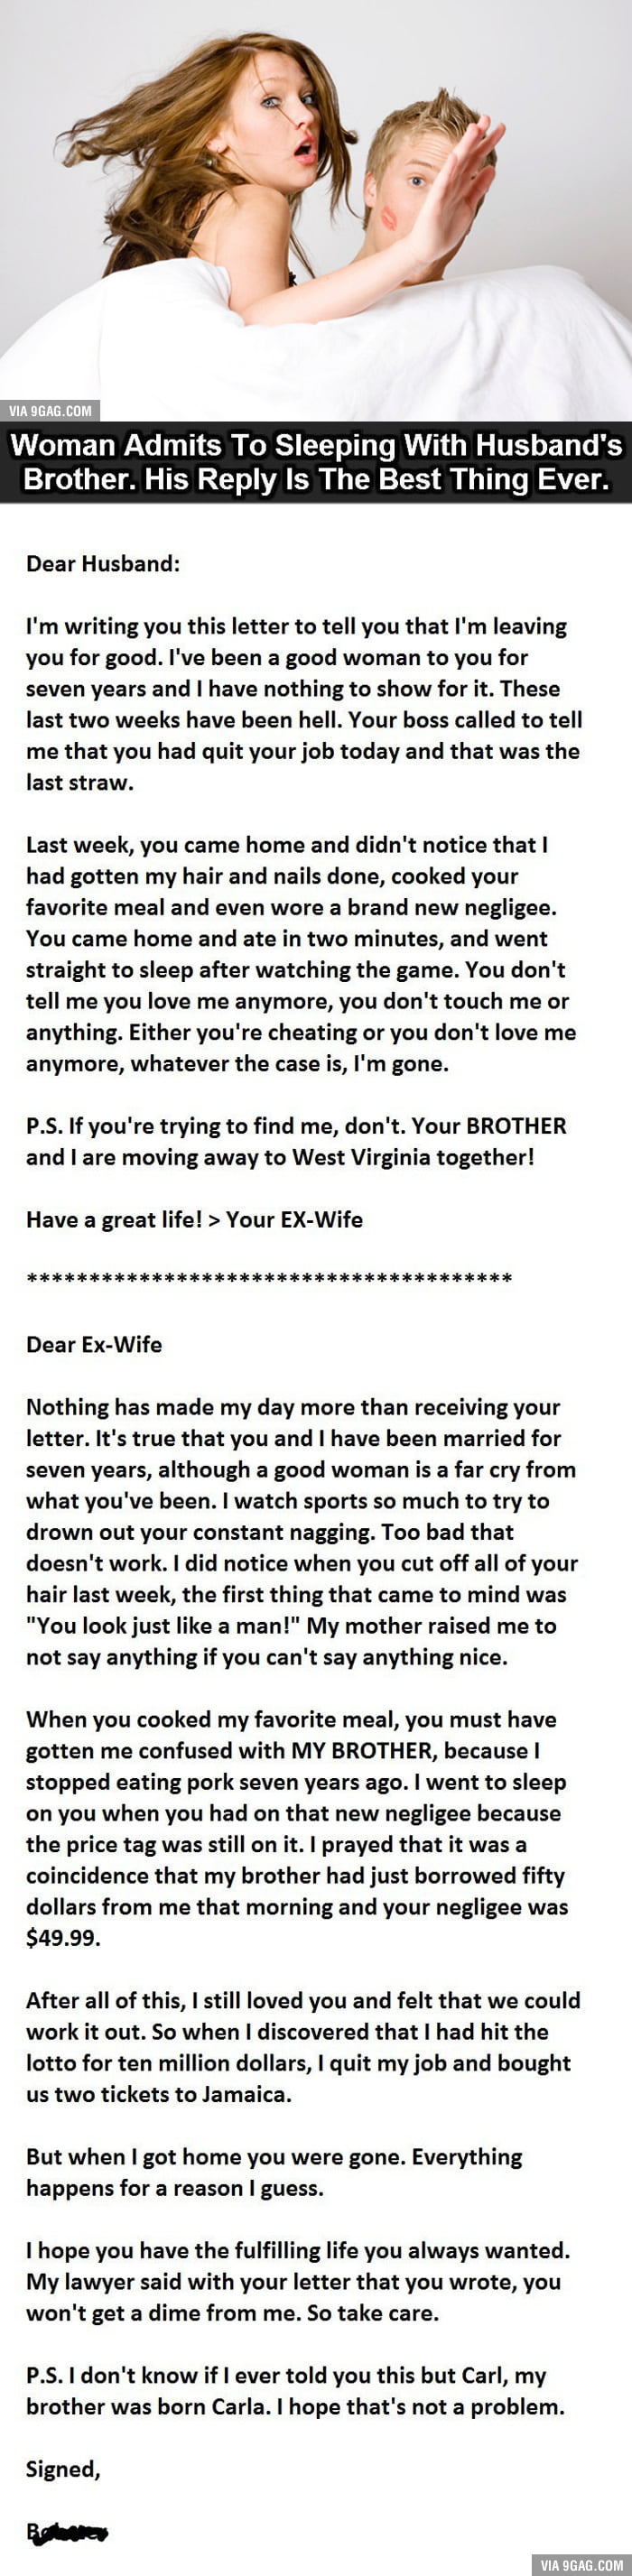 Who will be the husbands brother for his wife, as he is called